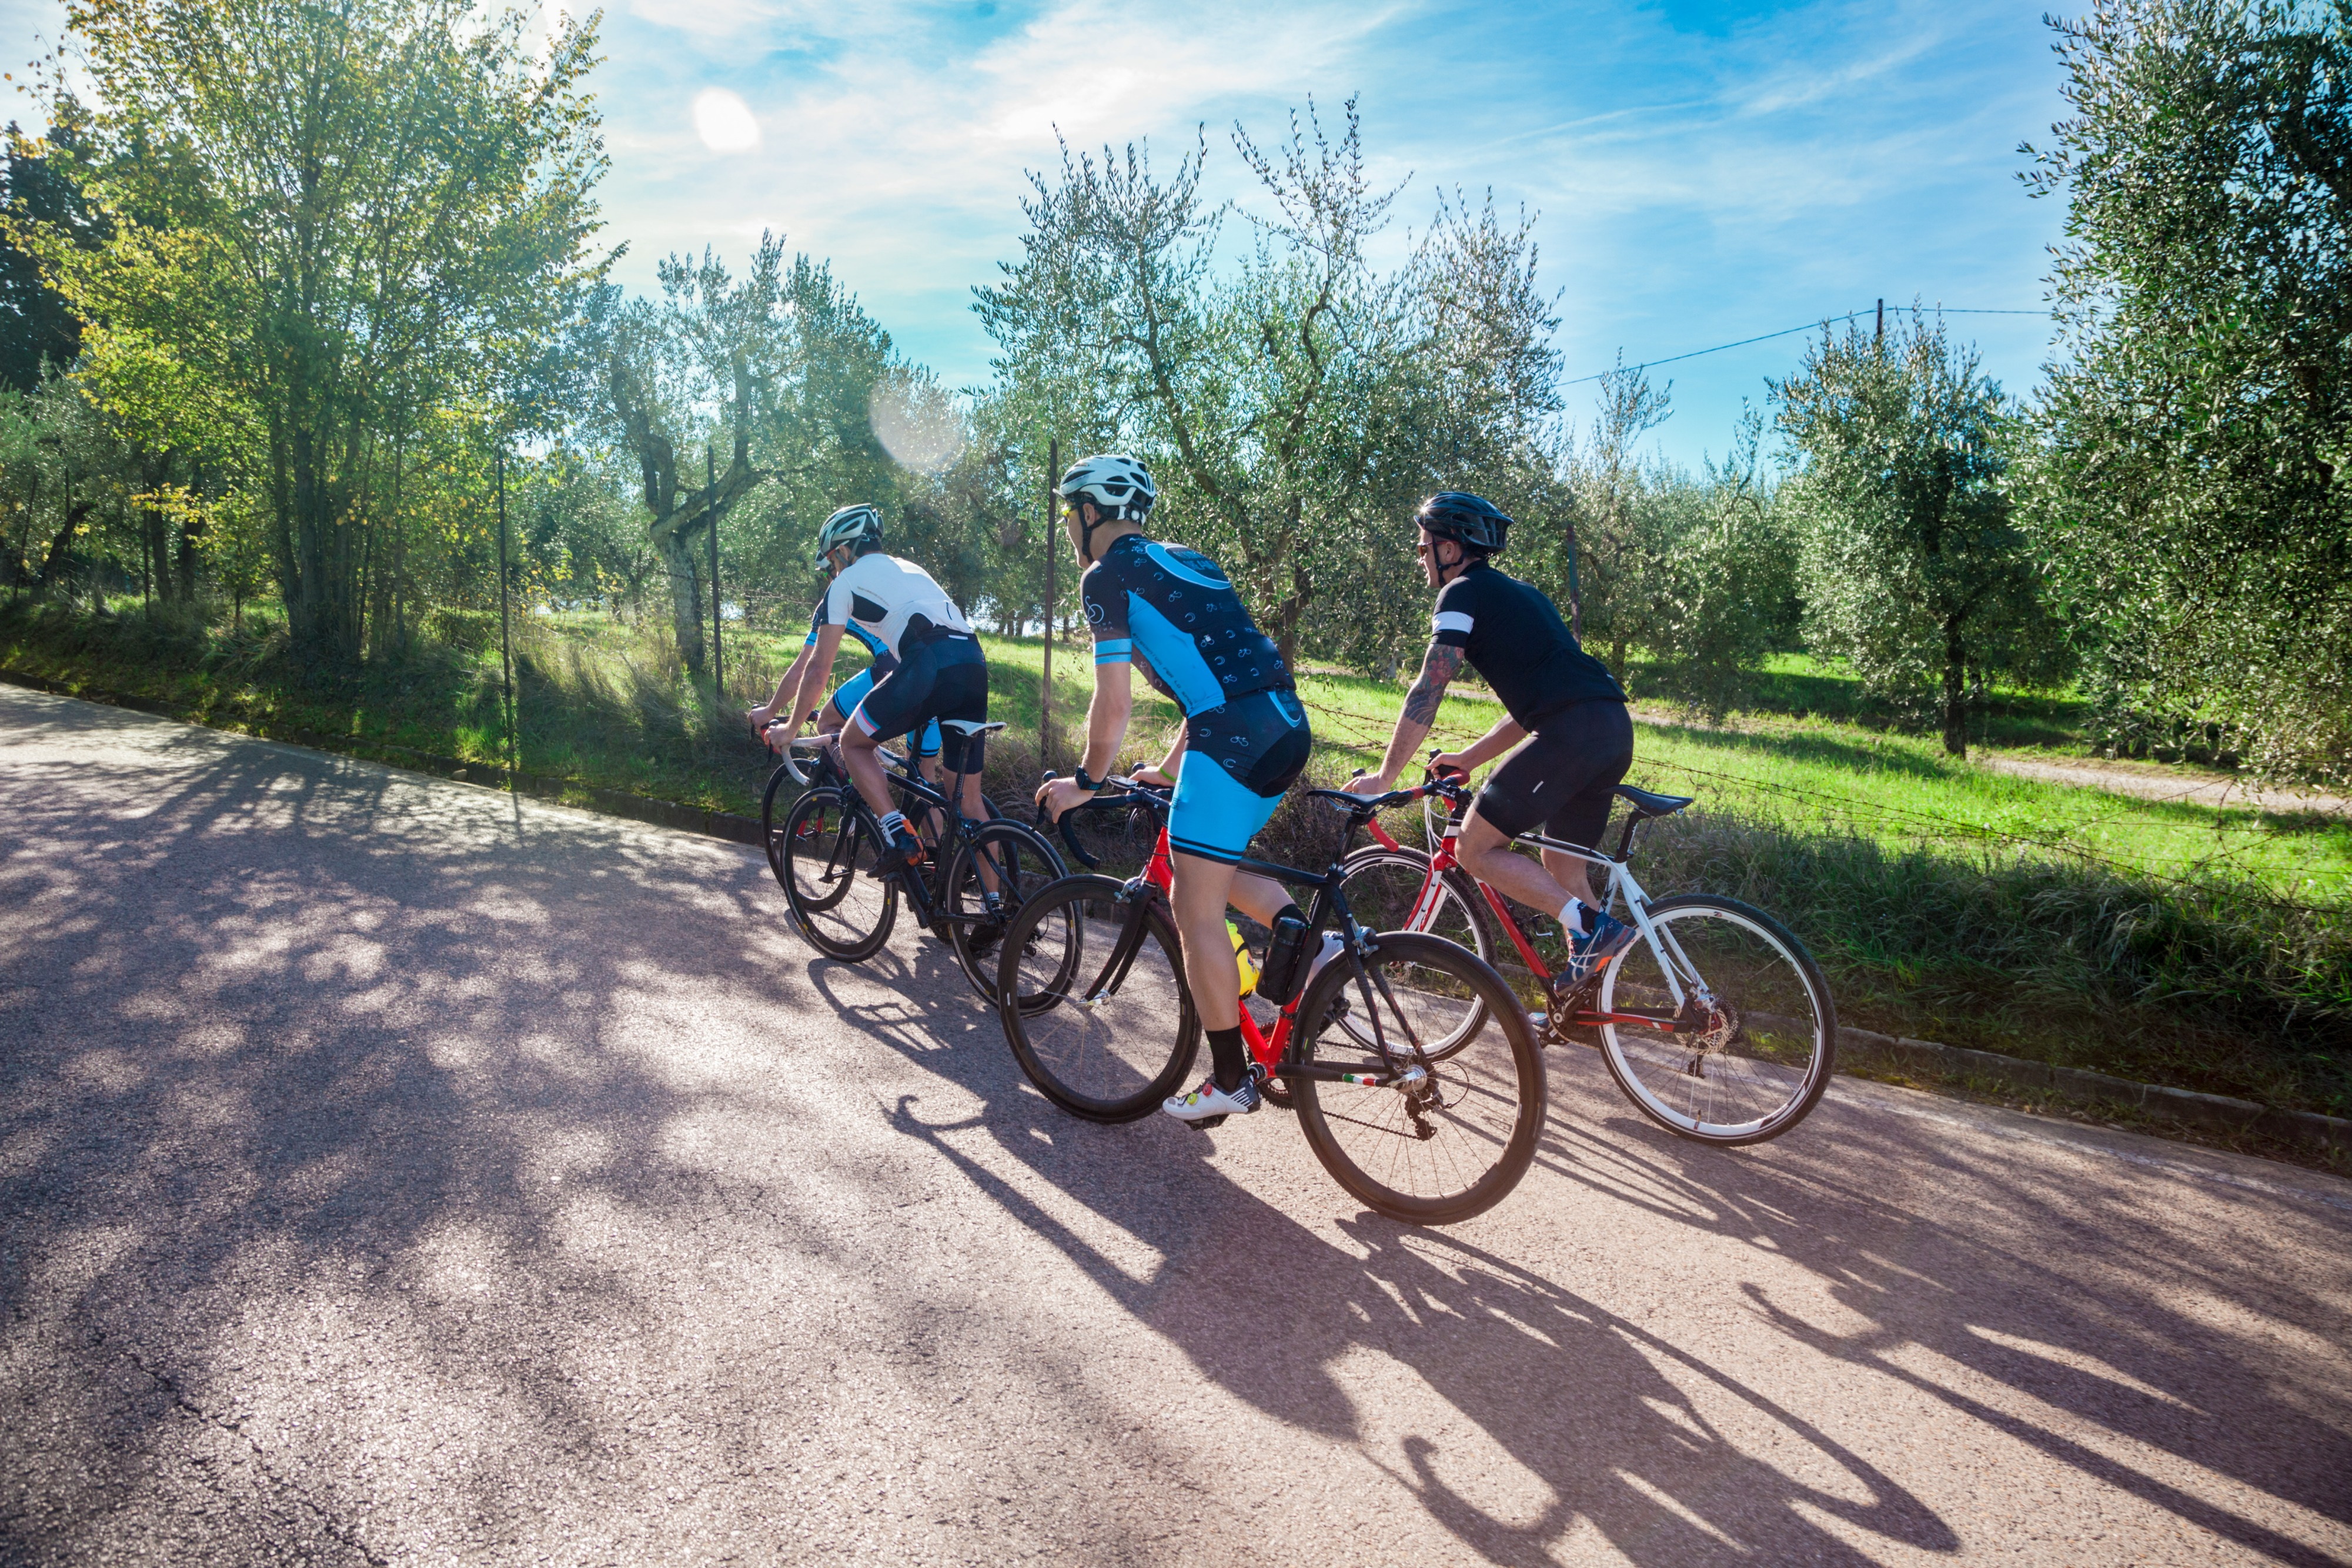 Florence Experience – Andrea & Matteo, The Triathletes 5